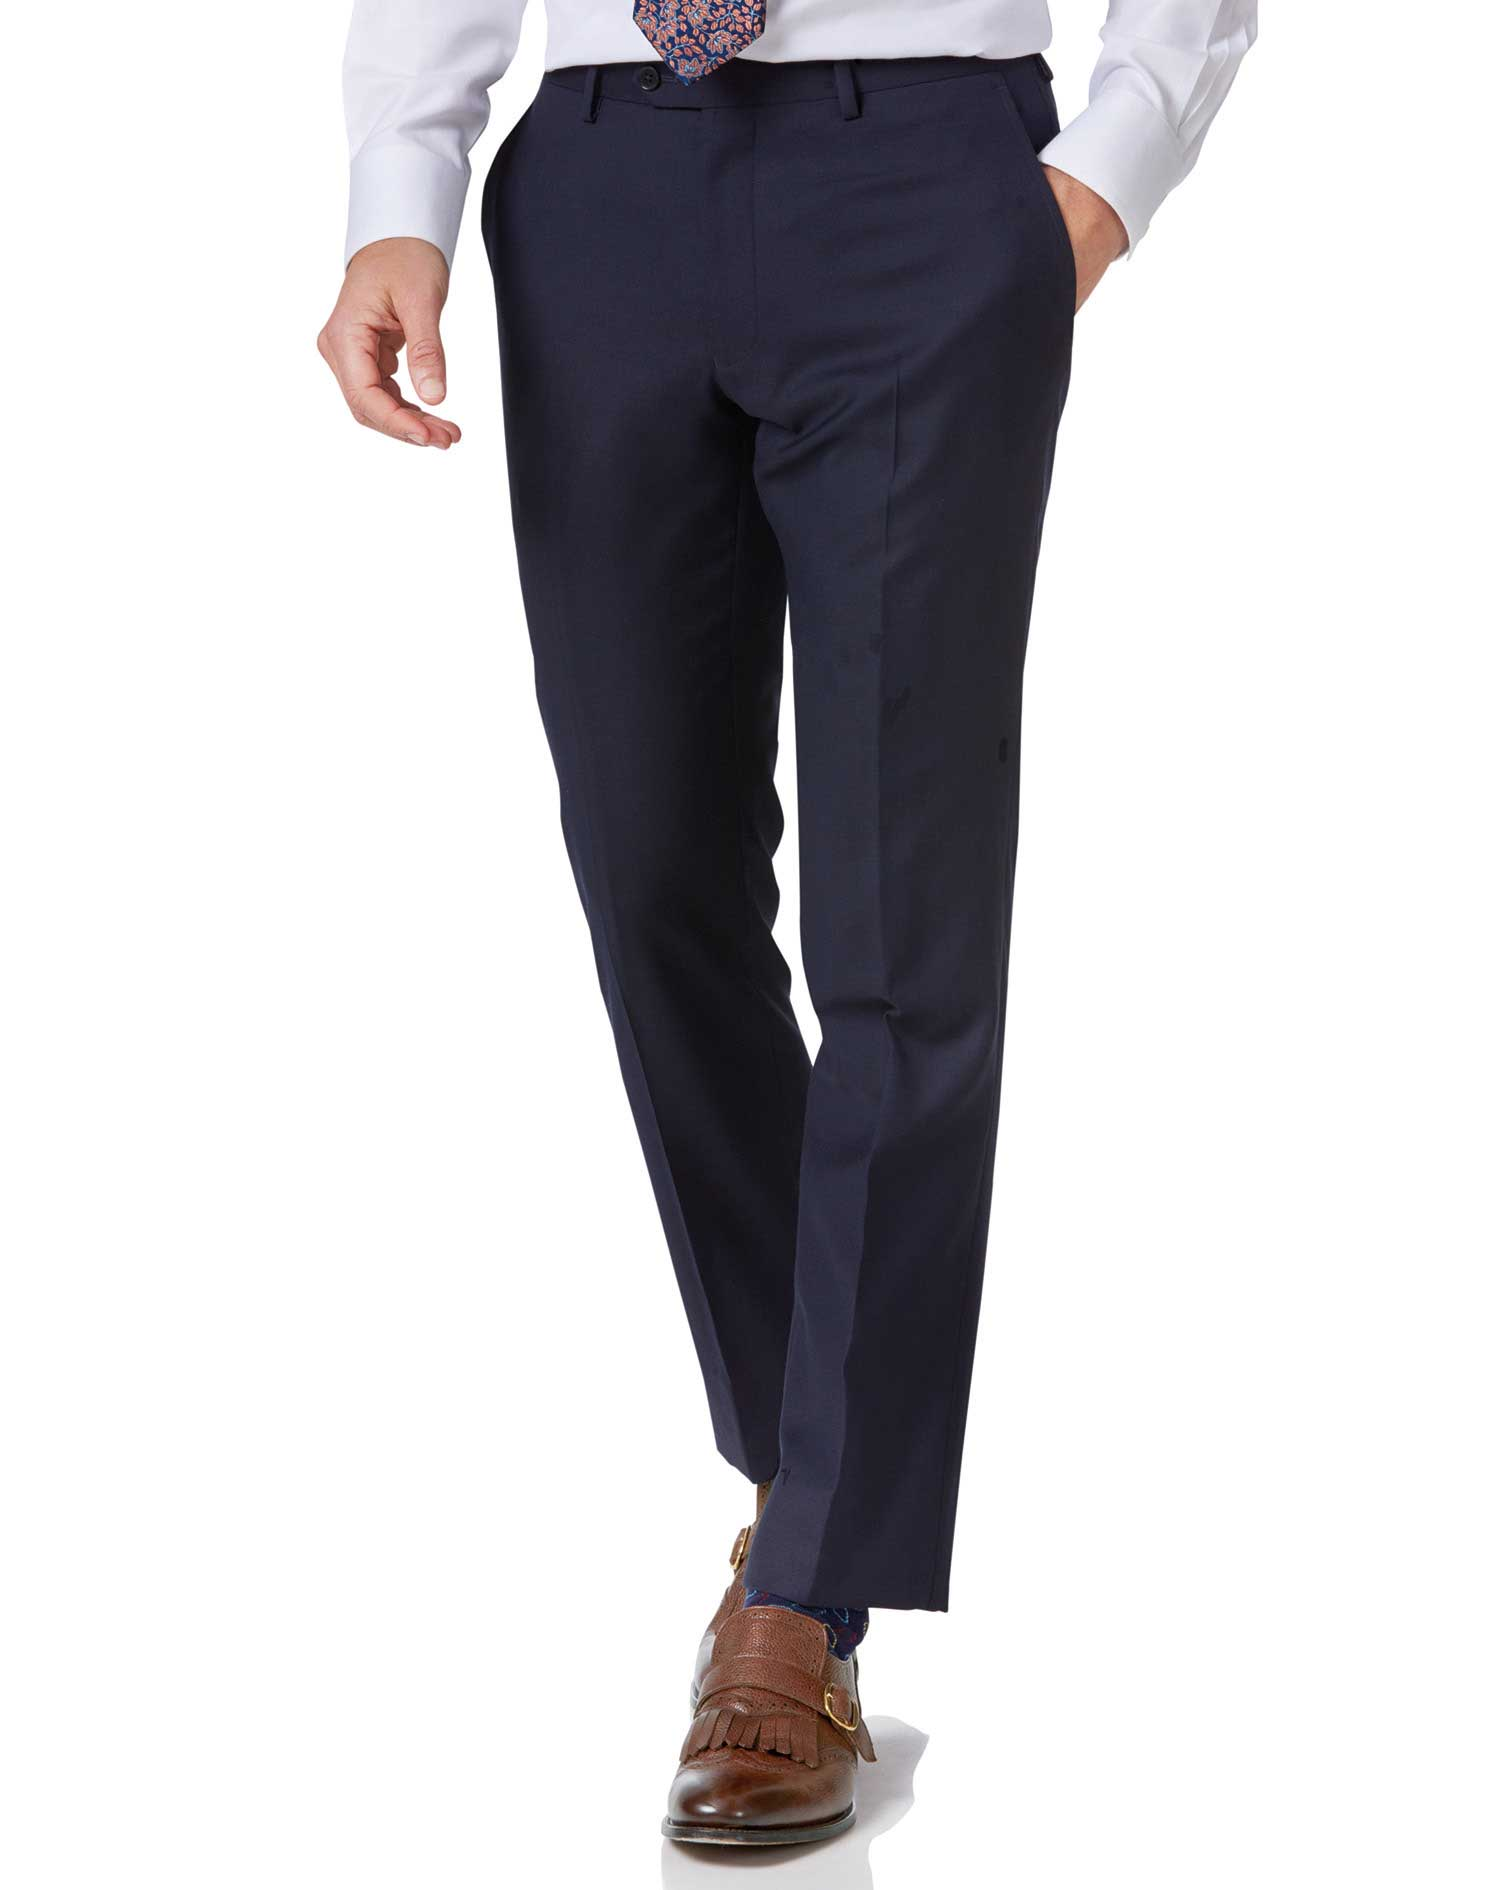 Navy Slim Fit Twill Business Suit Trousers Size W34 L38 by Charles Tyrwhitt